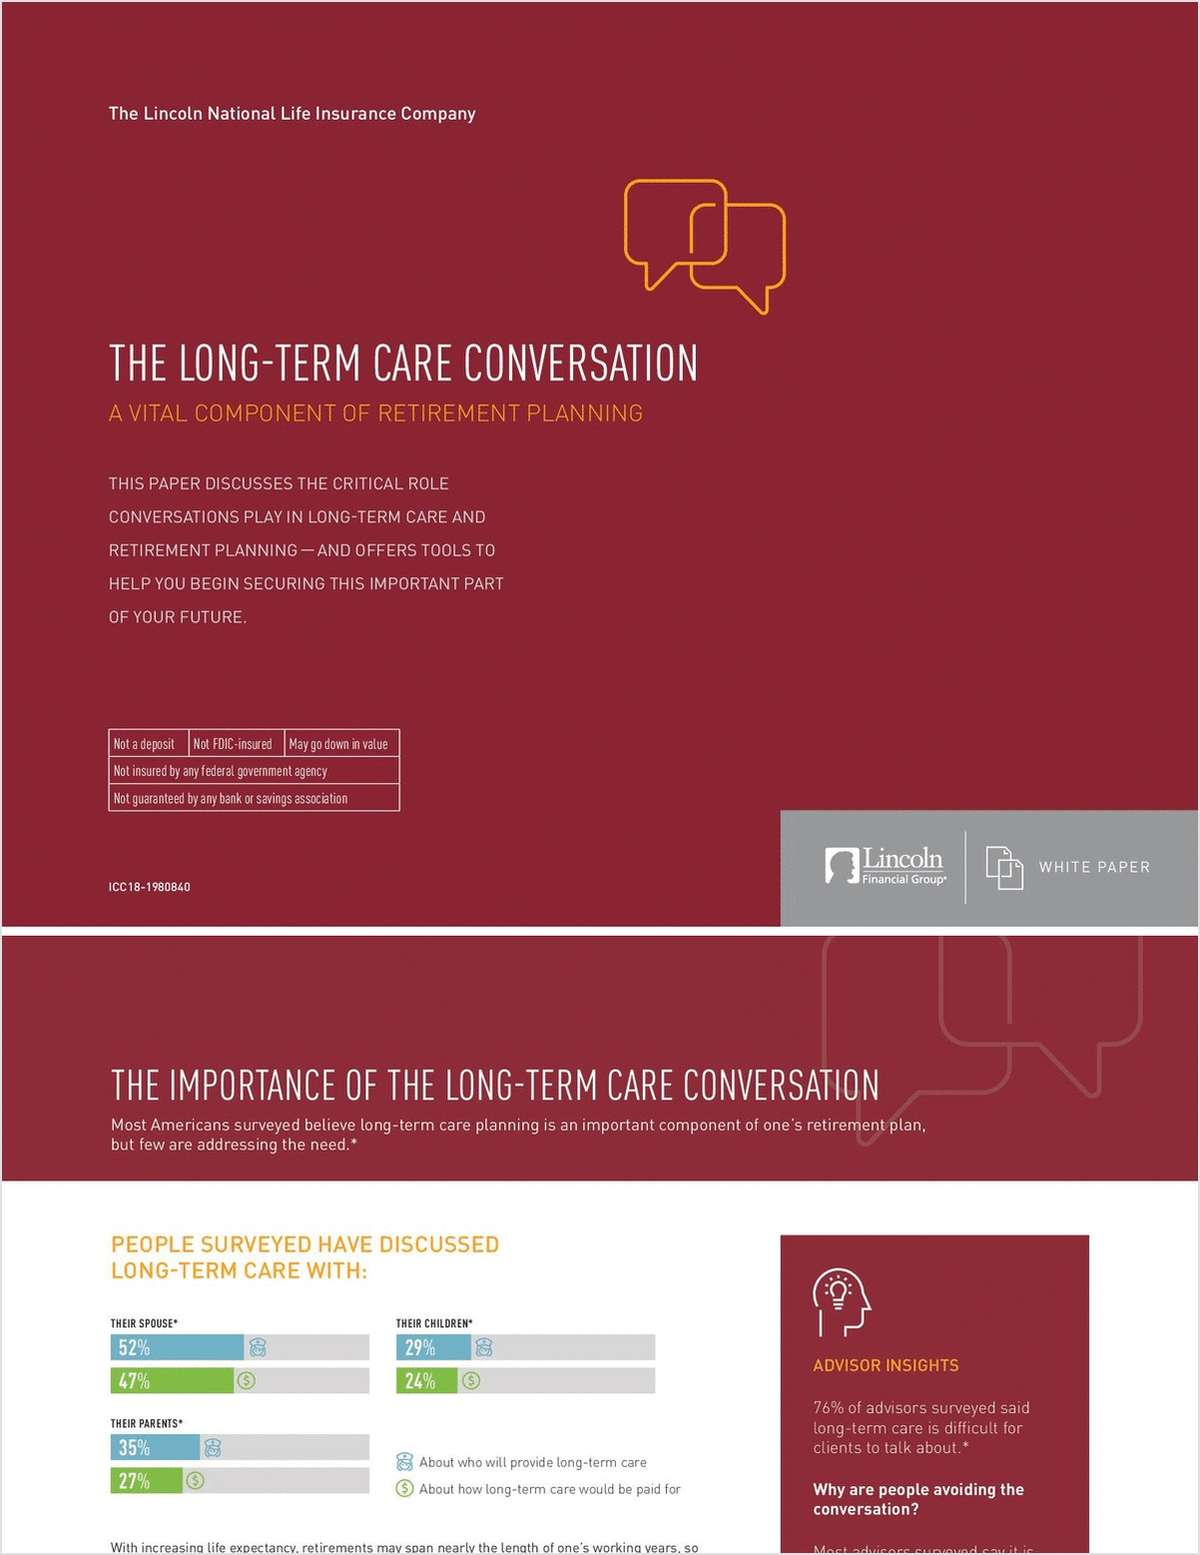 The Long-Term Care Conversation: A Vital Component of Retirement Planning